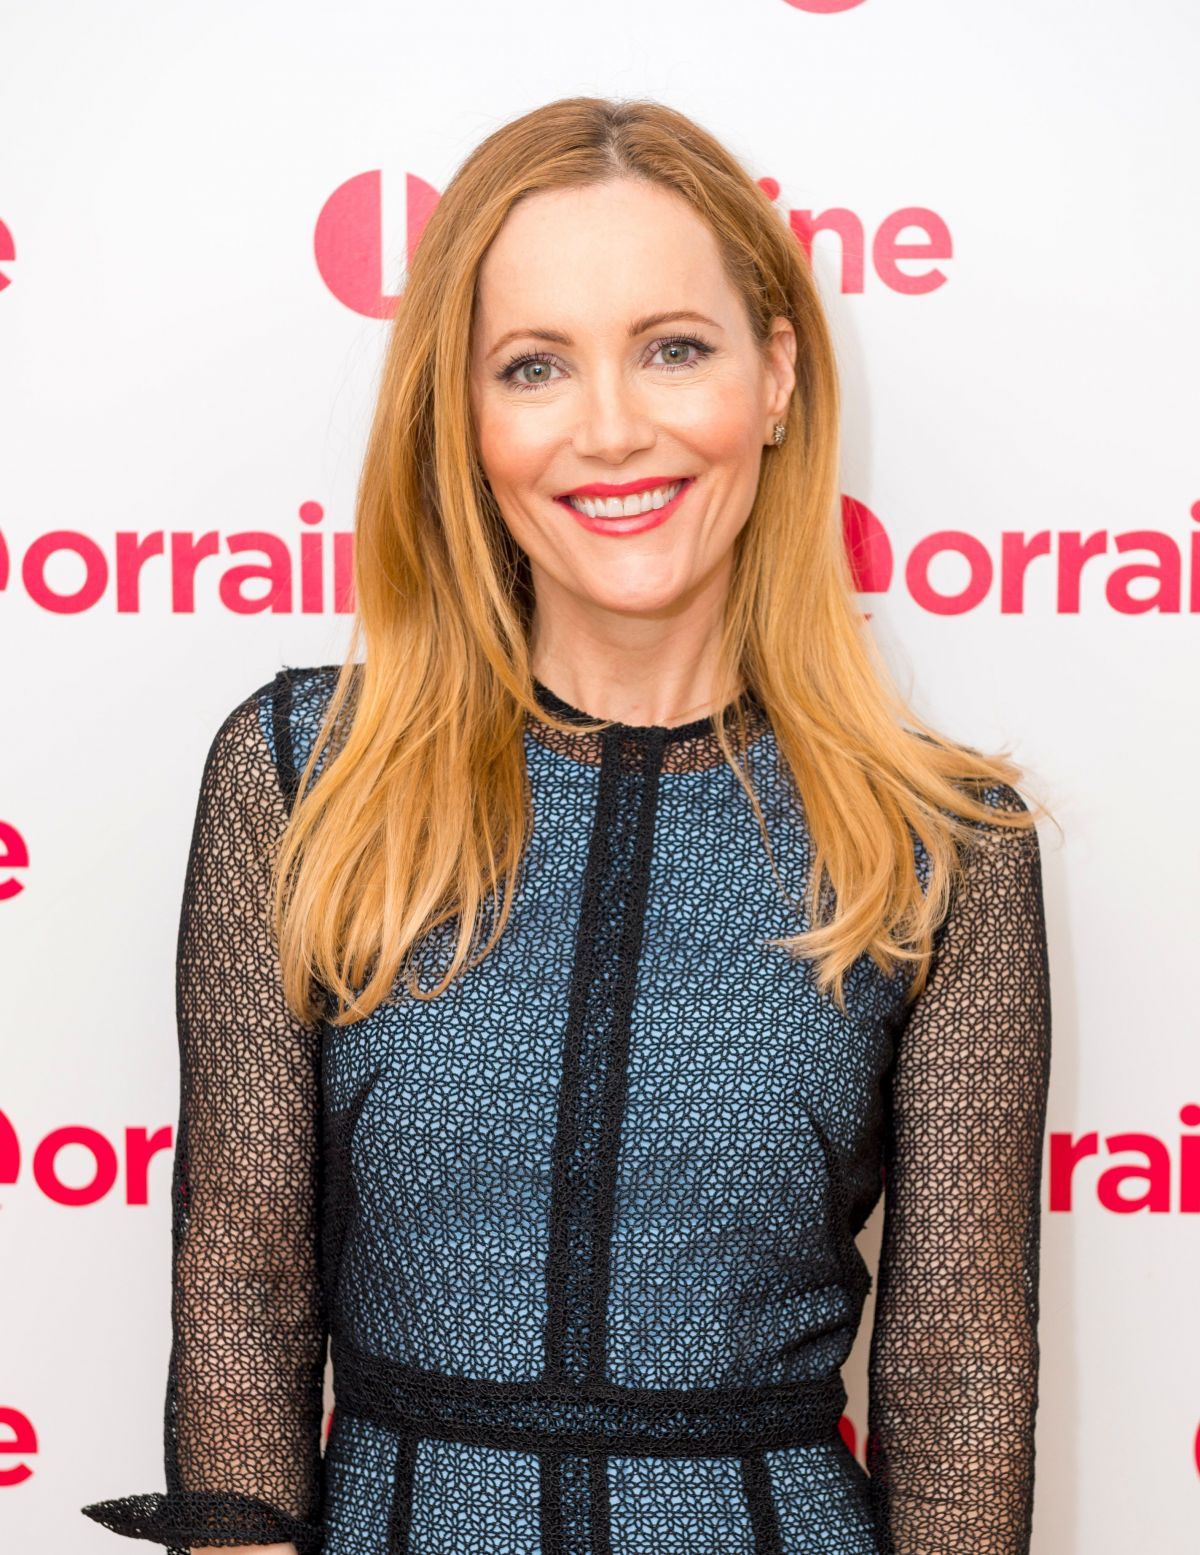 Pictures Leslie Mann nudes (89 photos), Ass, Is a cute, Twitter, cameltoe 2017